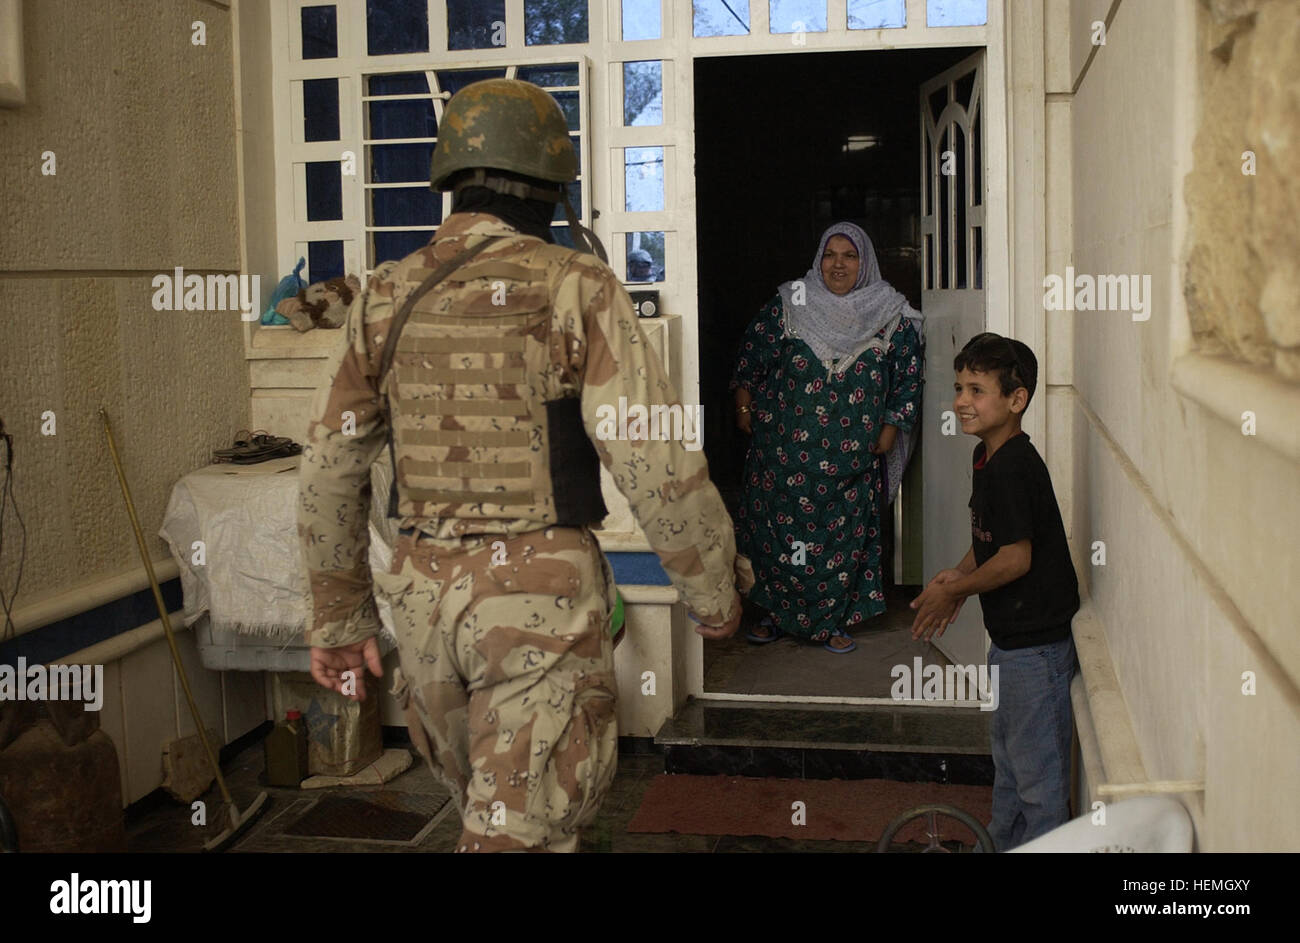 An Iraqi army soldier enters a house to search it while an